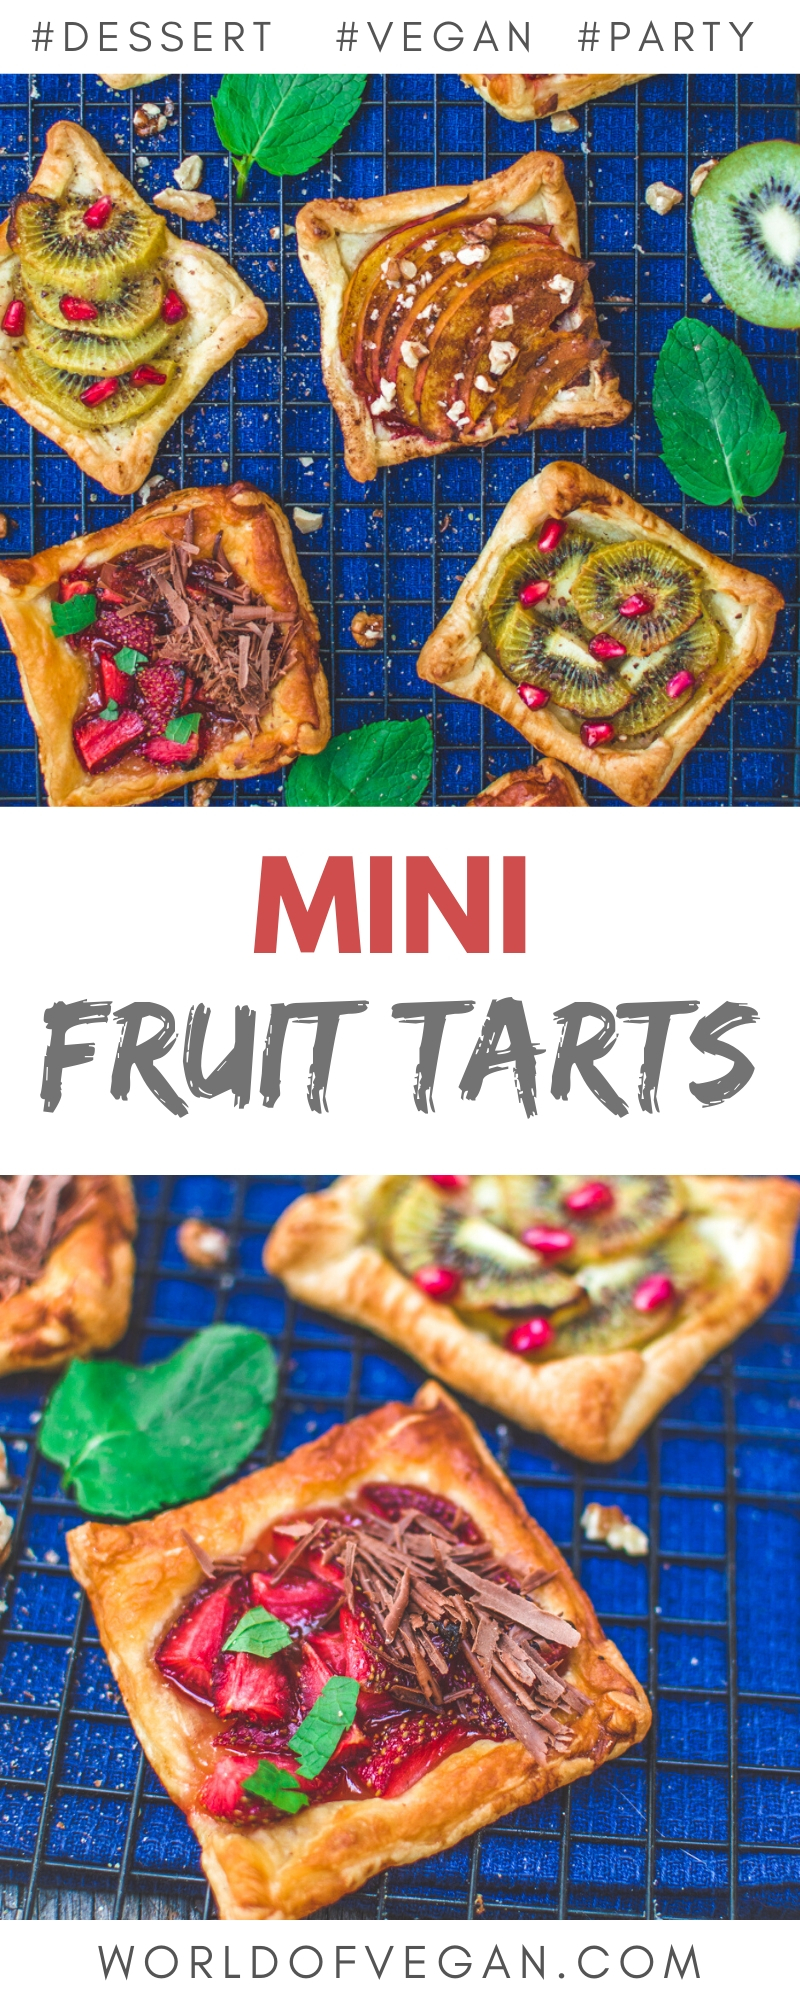 Mini Vegan Fruit Tarts | Easy Dessert Recipe | World of Vegan | #vegan #tarts #fruits #fruits #dessert #worldofvegan